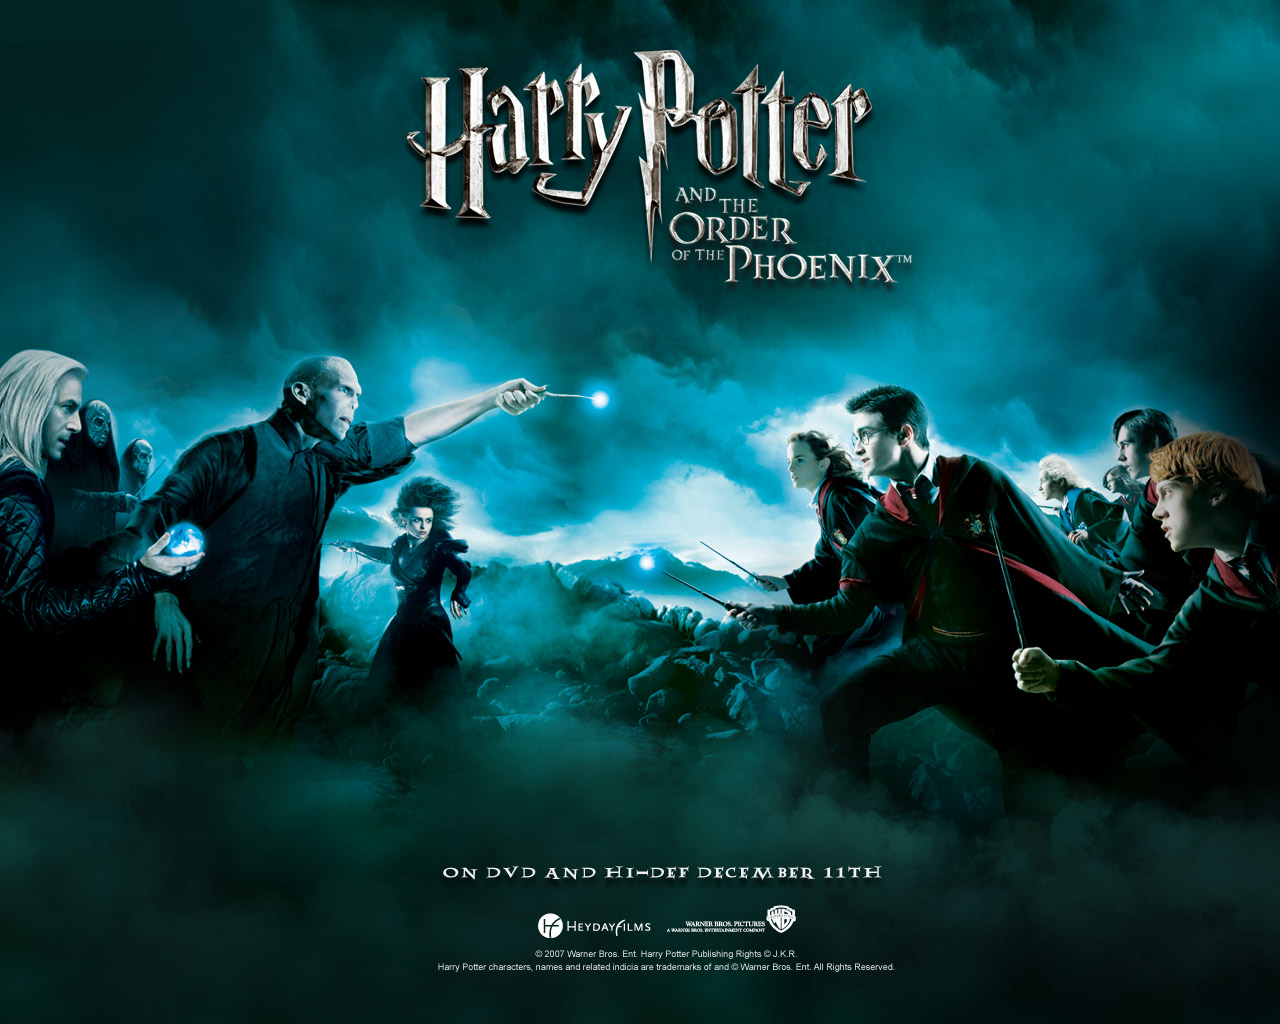 Harry Potter Images Hp Hd Wallpaper And Background P Os